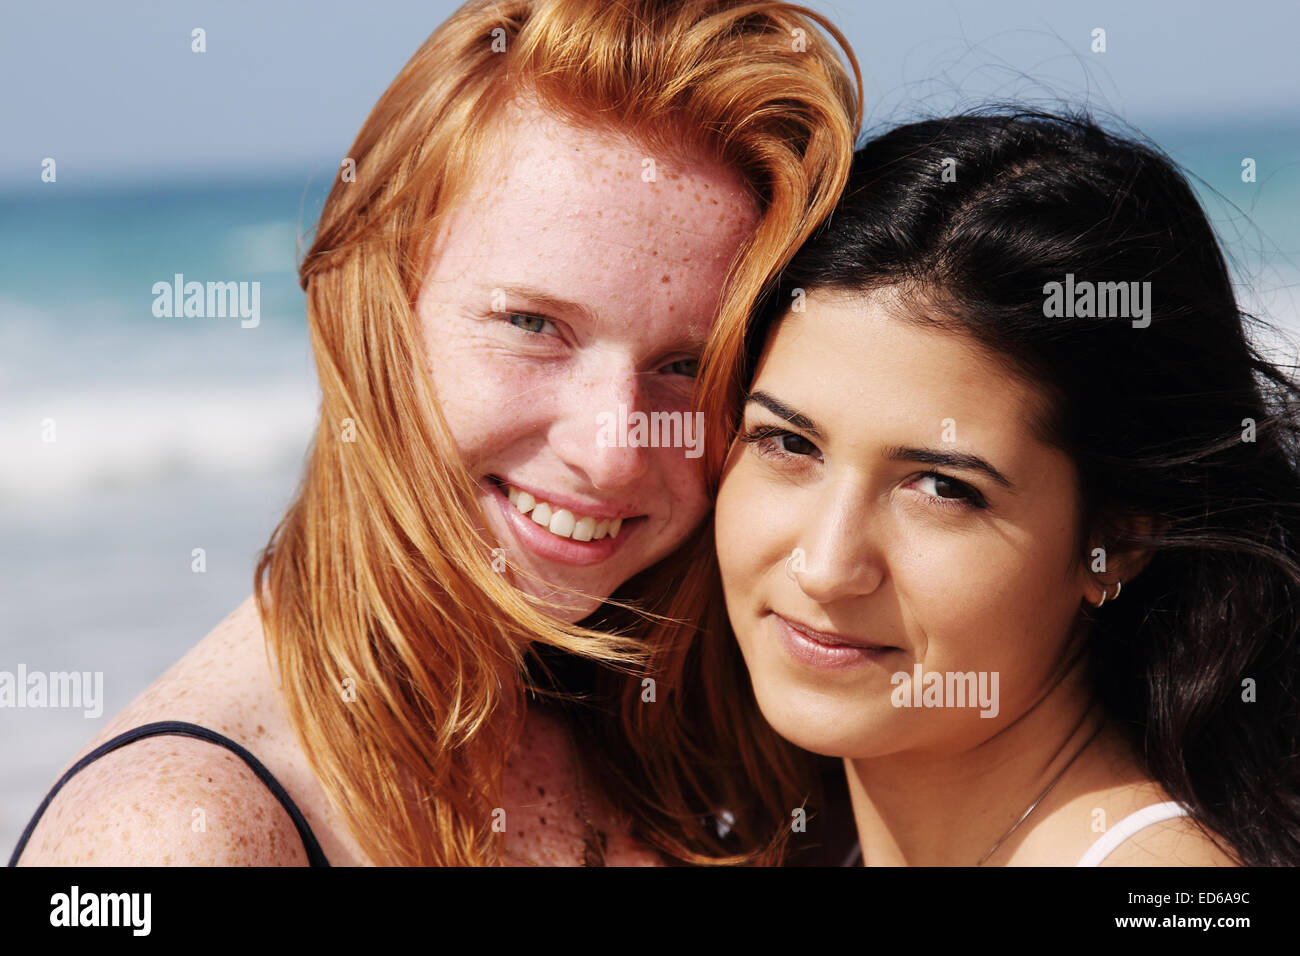 two smiling young teenage girlfriends on the beach - Stock Image